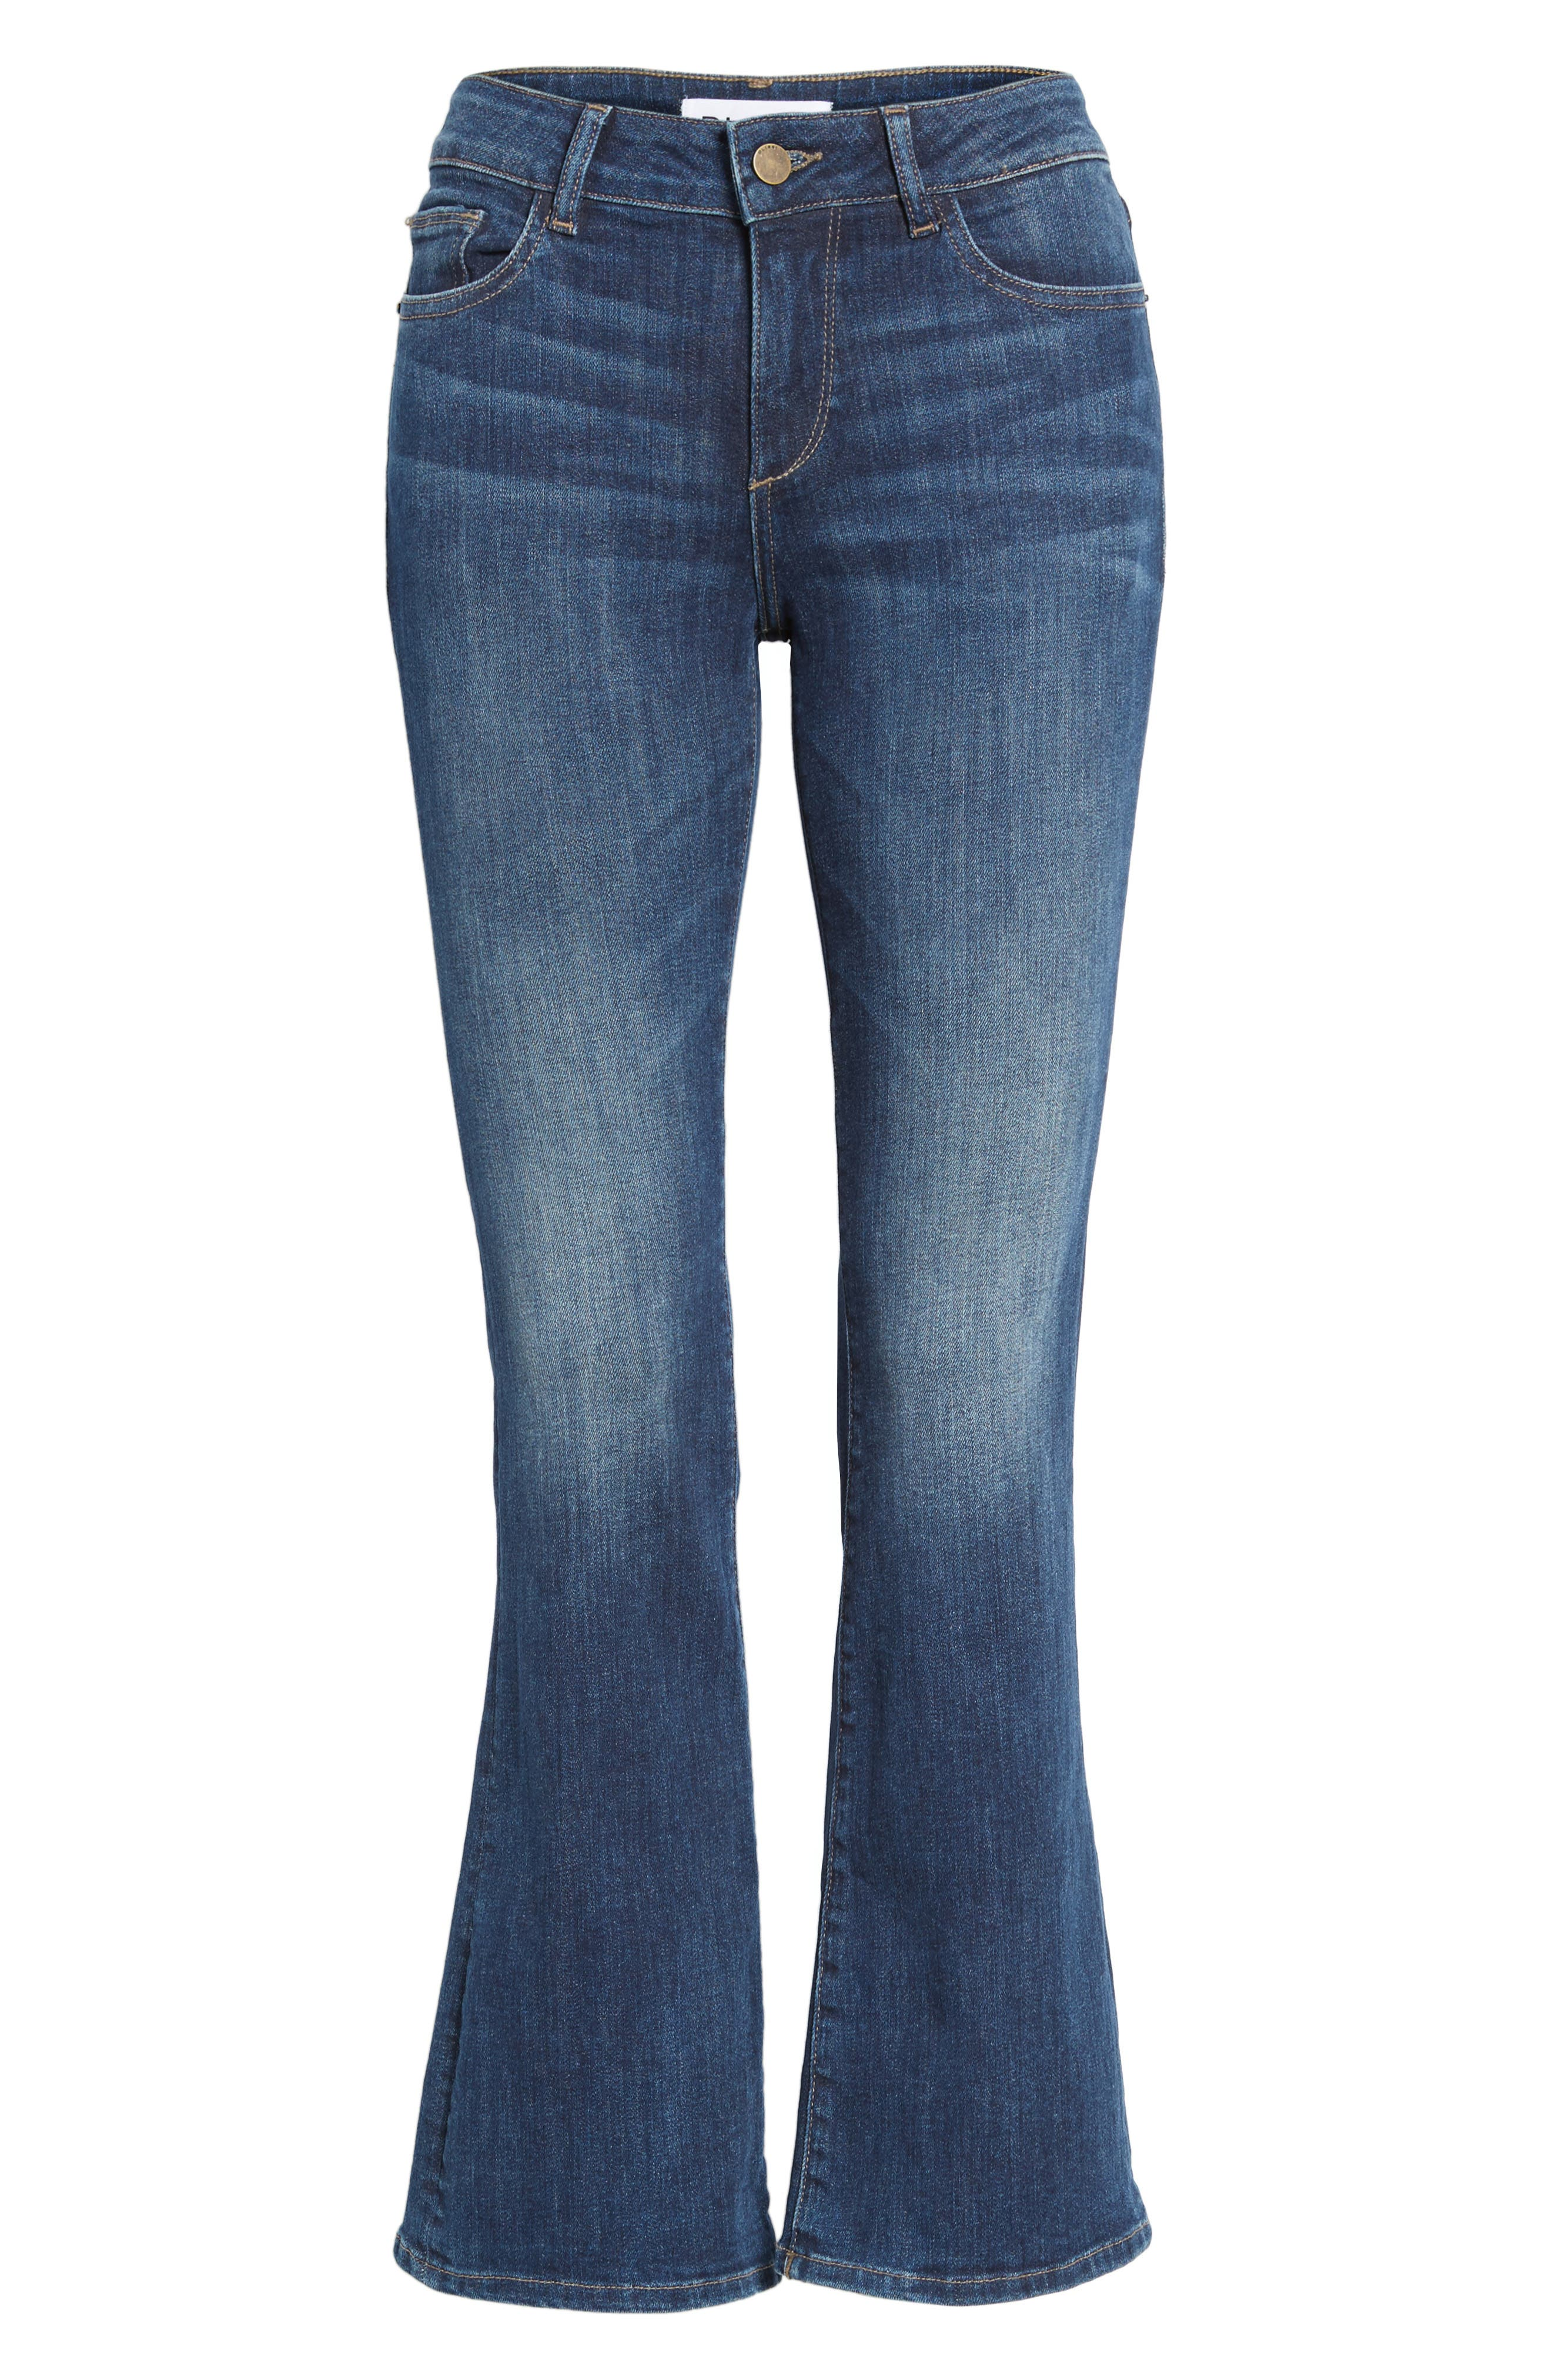 Abbey Bootcut Jeans,                             Alternate thumbnail 6, color,                             420